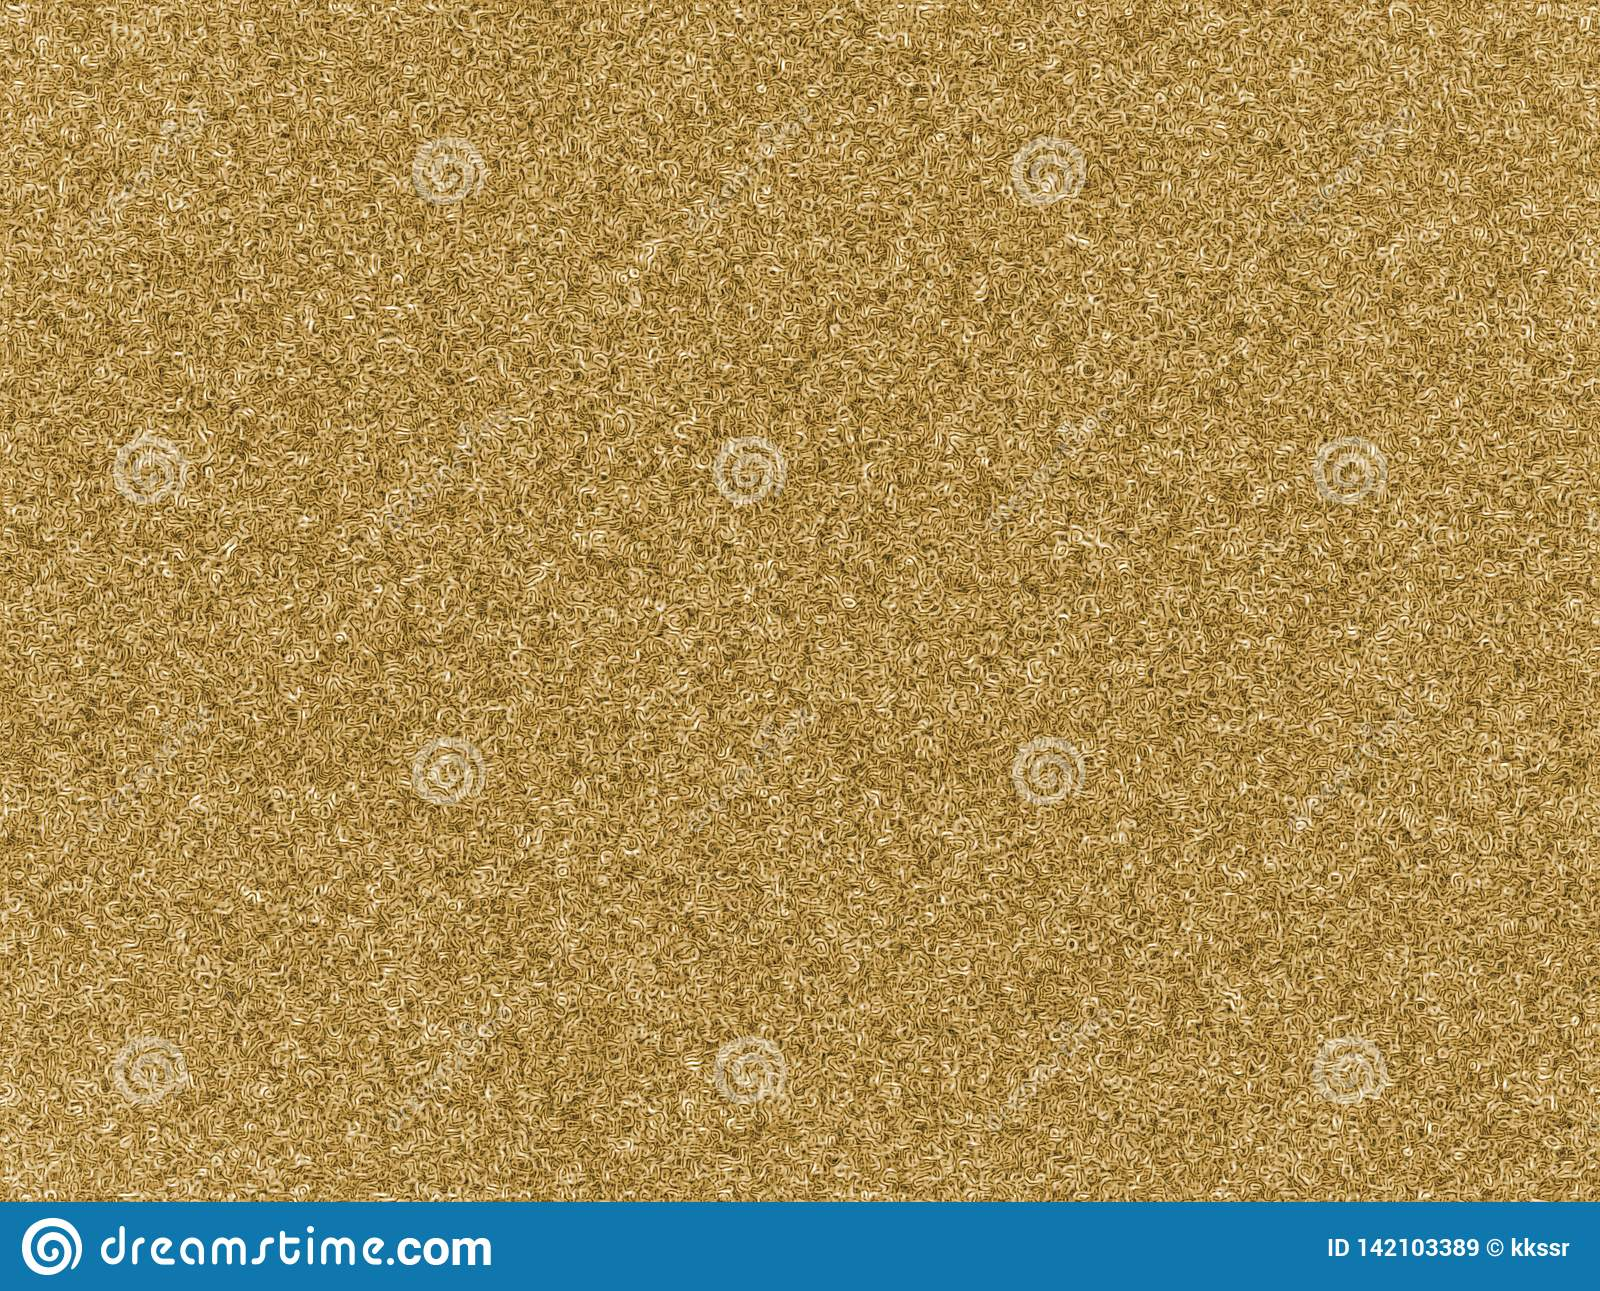 Light yellow natural color of carpet wool seamless texture background. Doodle swirl plastic artificial rug.